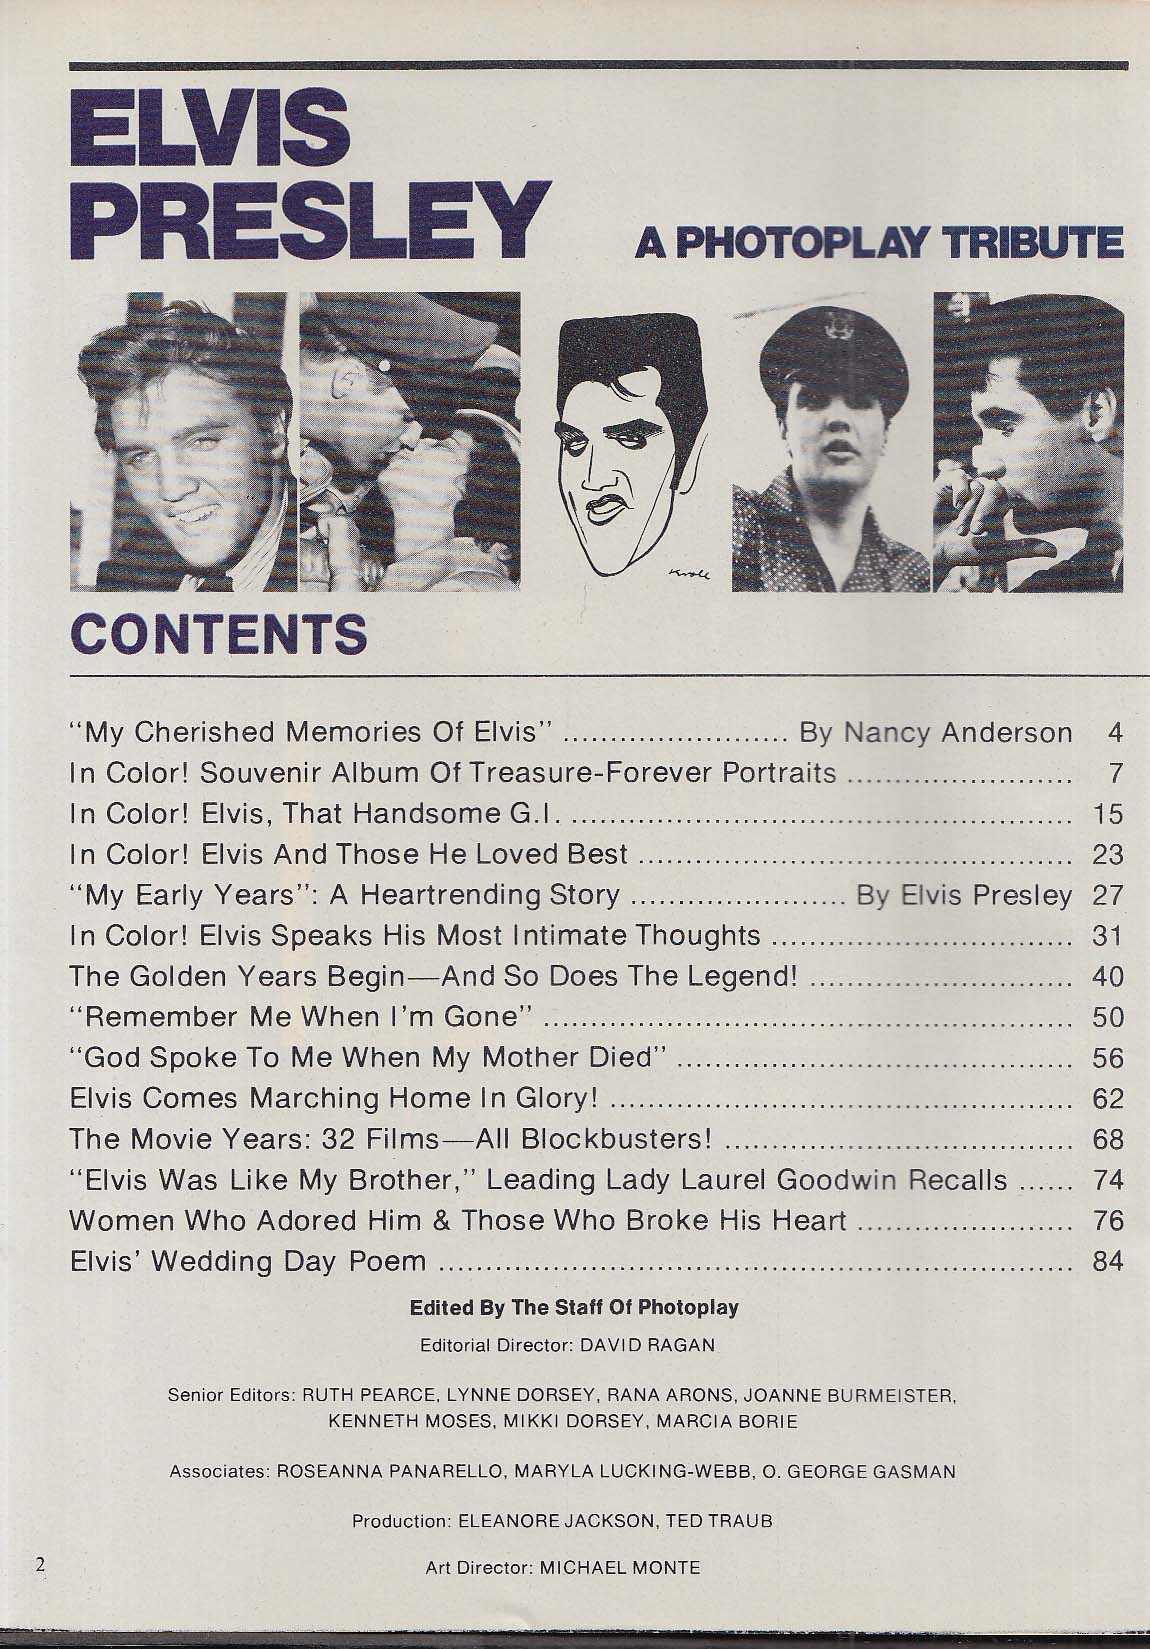 ELVIS PRESLEY Photoplay Tribute Special Collector's Edition 1977